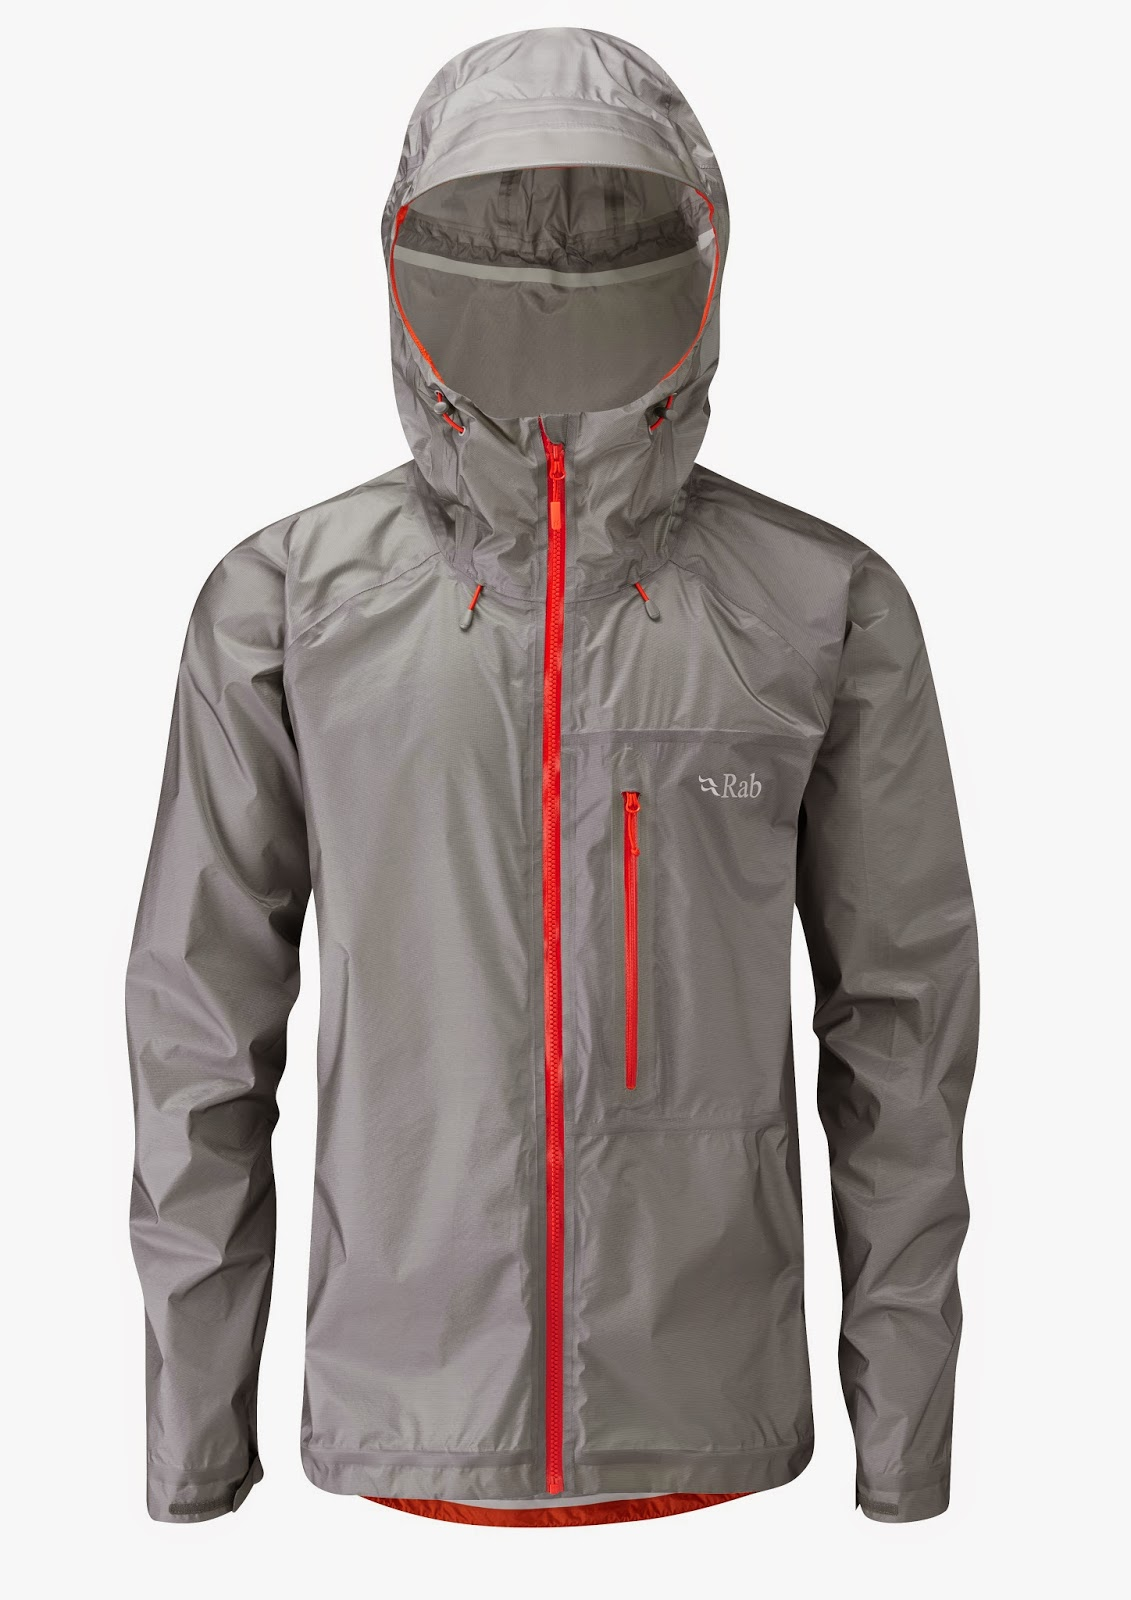 http://www.outdoorkit.co.uk/product.php?product_id=19837&category_id=333